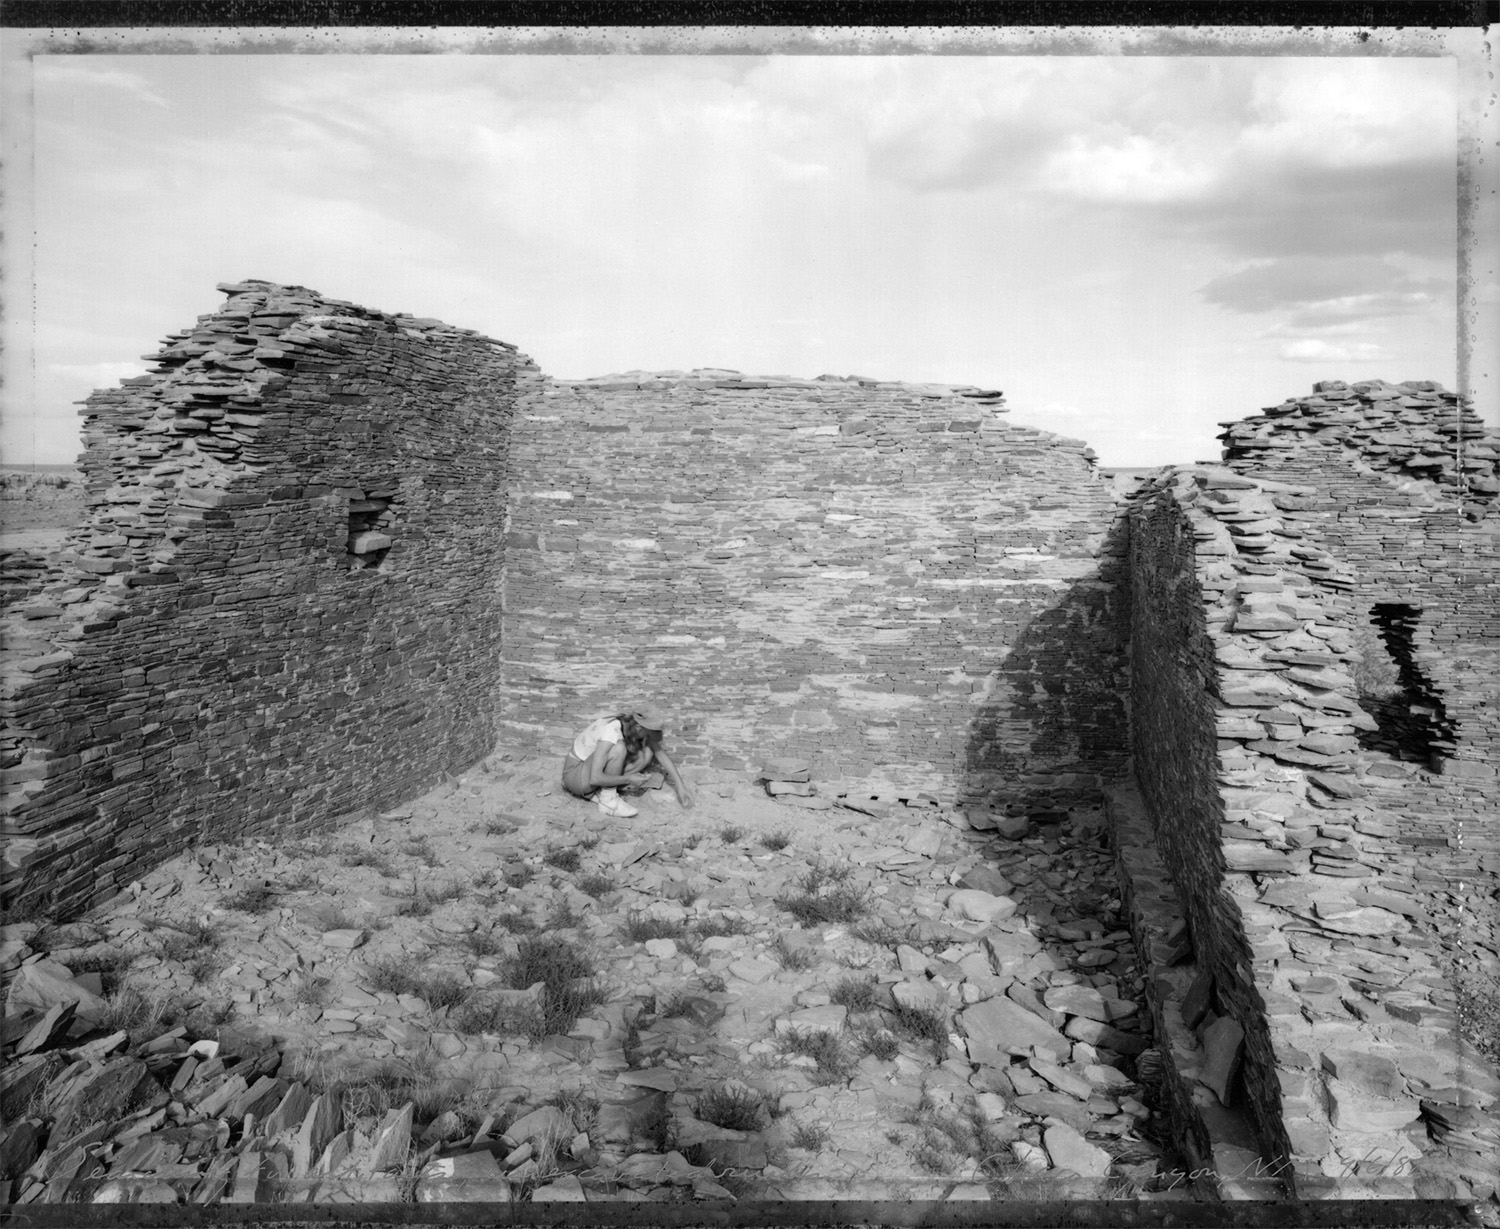 Searching for artifacts, unexcavated ruins, Chaco Canyon, New Mexico, 1982